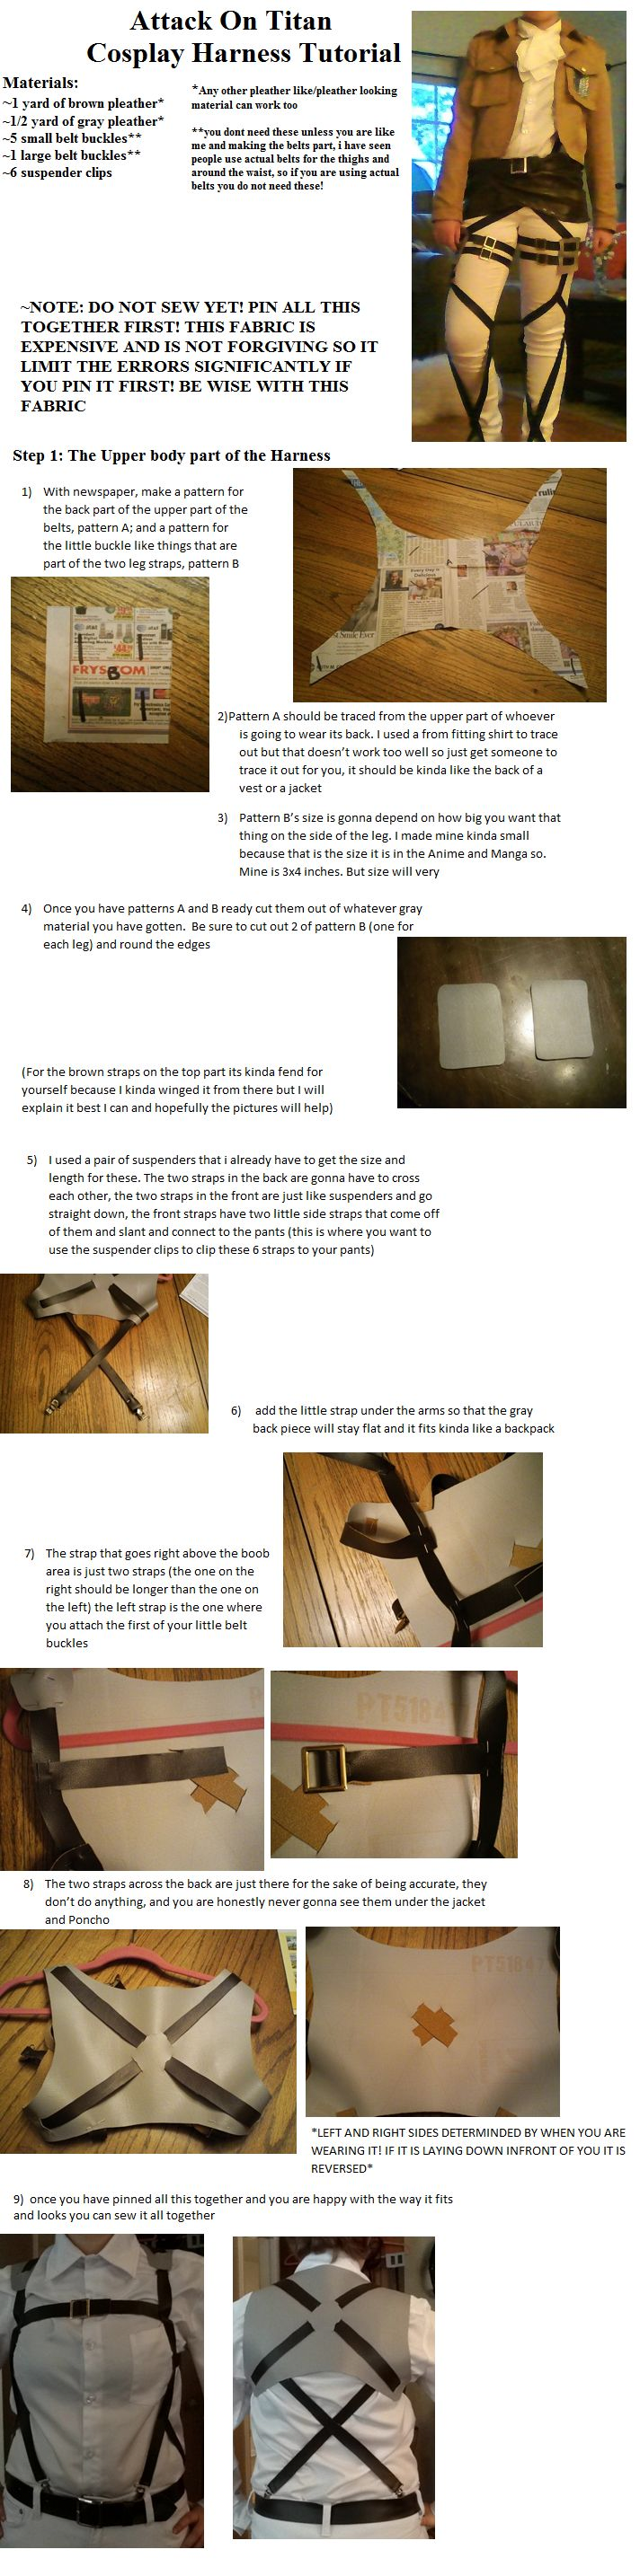 Attack on Titan Harness Tutorial Part 1 by CasuallyDisregarding.deviantart.com on @deviantART